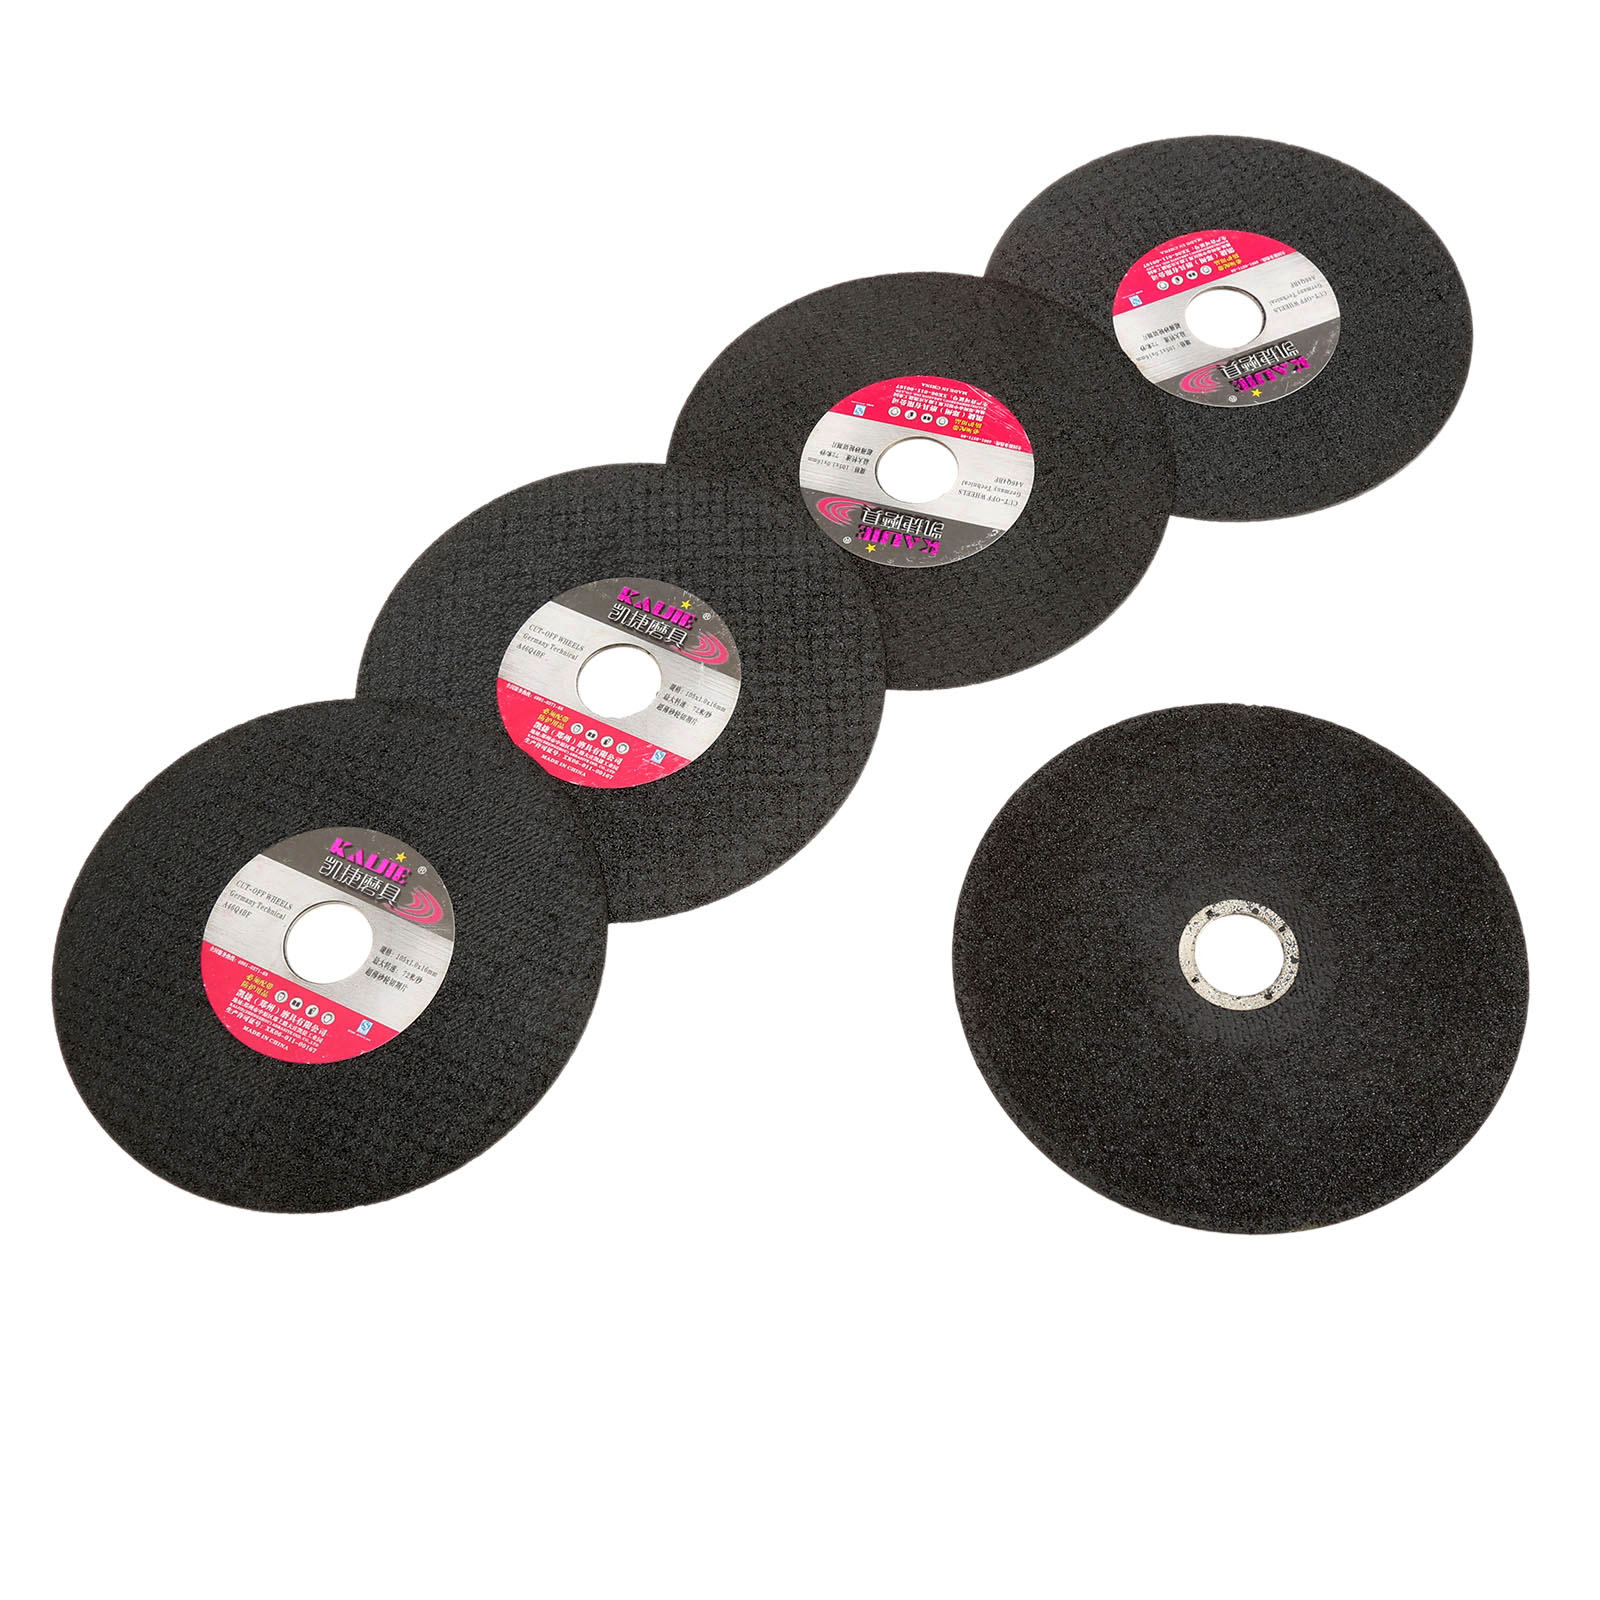 5Pcs Dremel Accesories Cutting Wheel 105mm Resin Grinding Wheel Cut Off Cutter Abrasive Disc Cutting Disc for Metal Wood Steel jin ruiguang cut pieces of high speed resin cutting wheel 105 1 16 dual wholesale